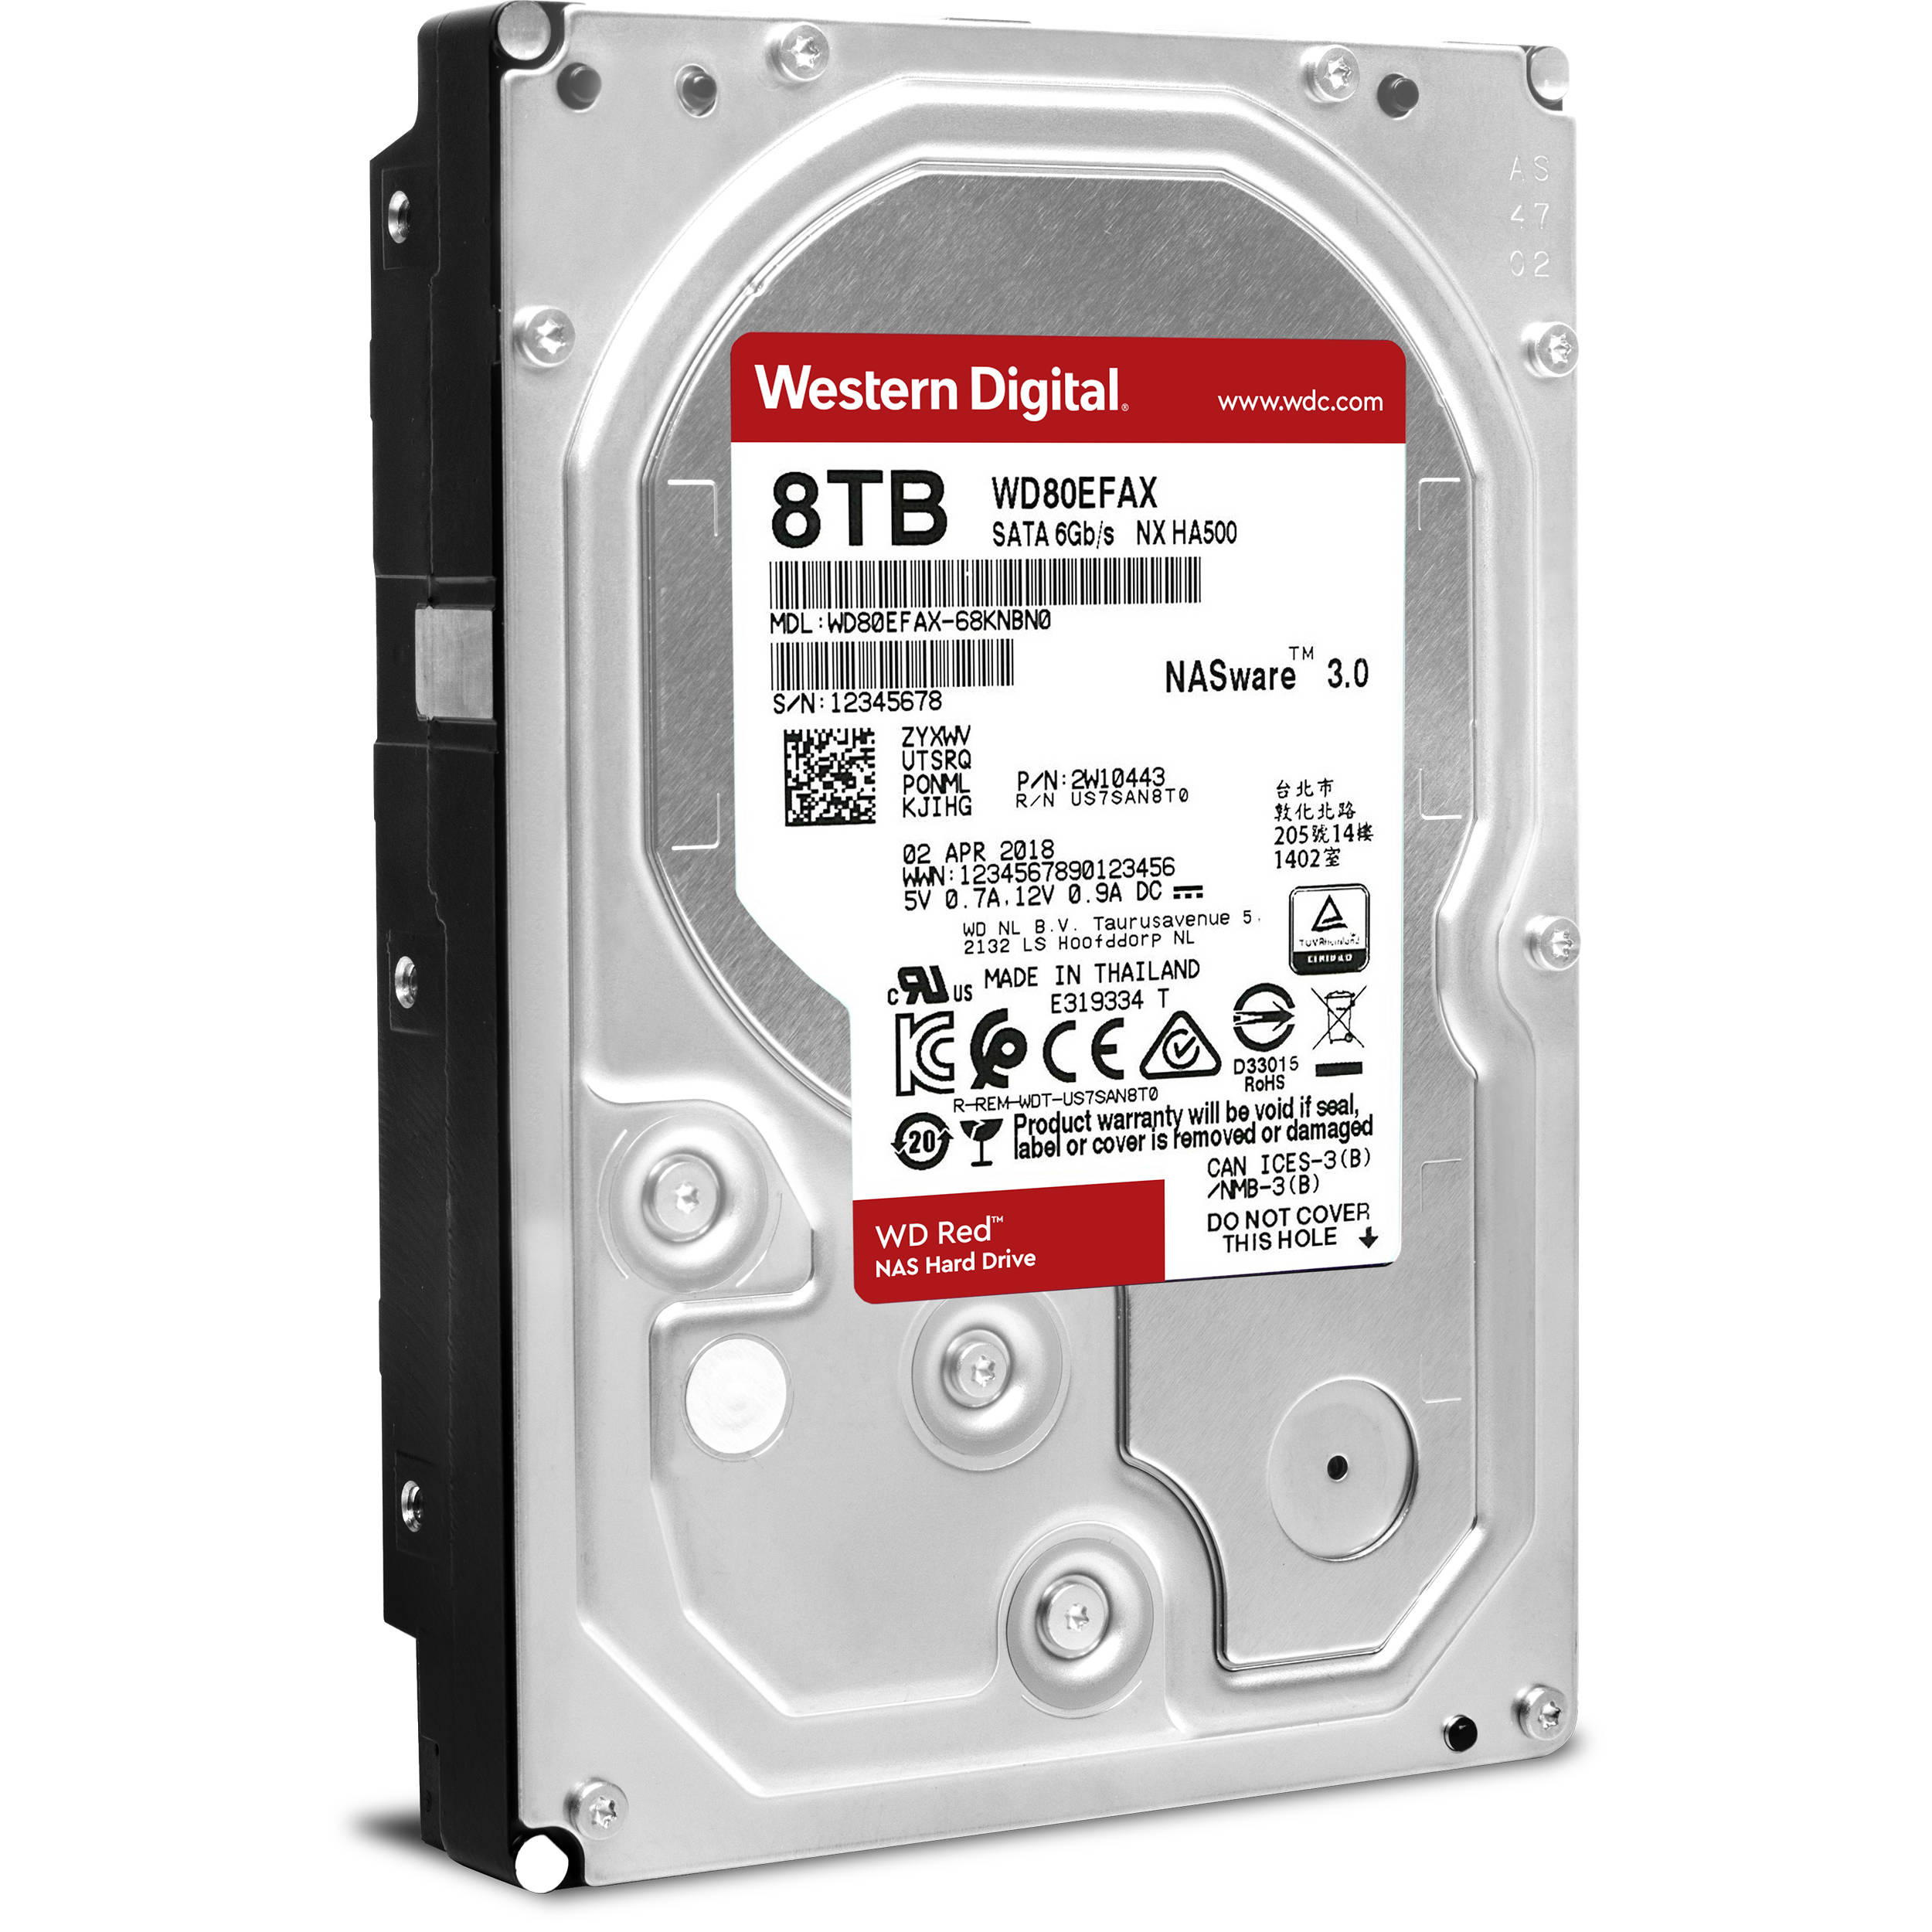 wd red pro 8tb review